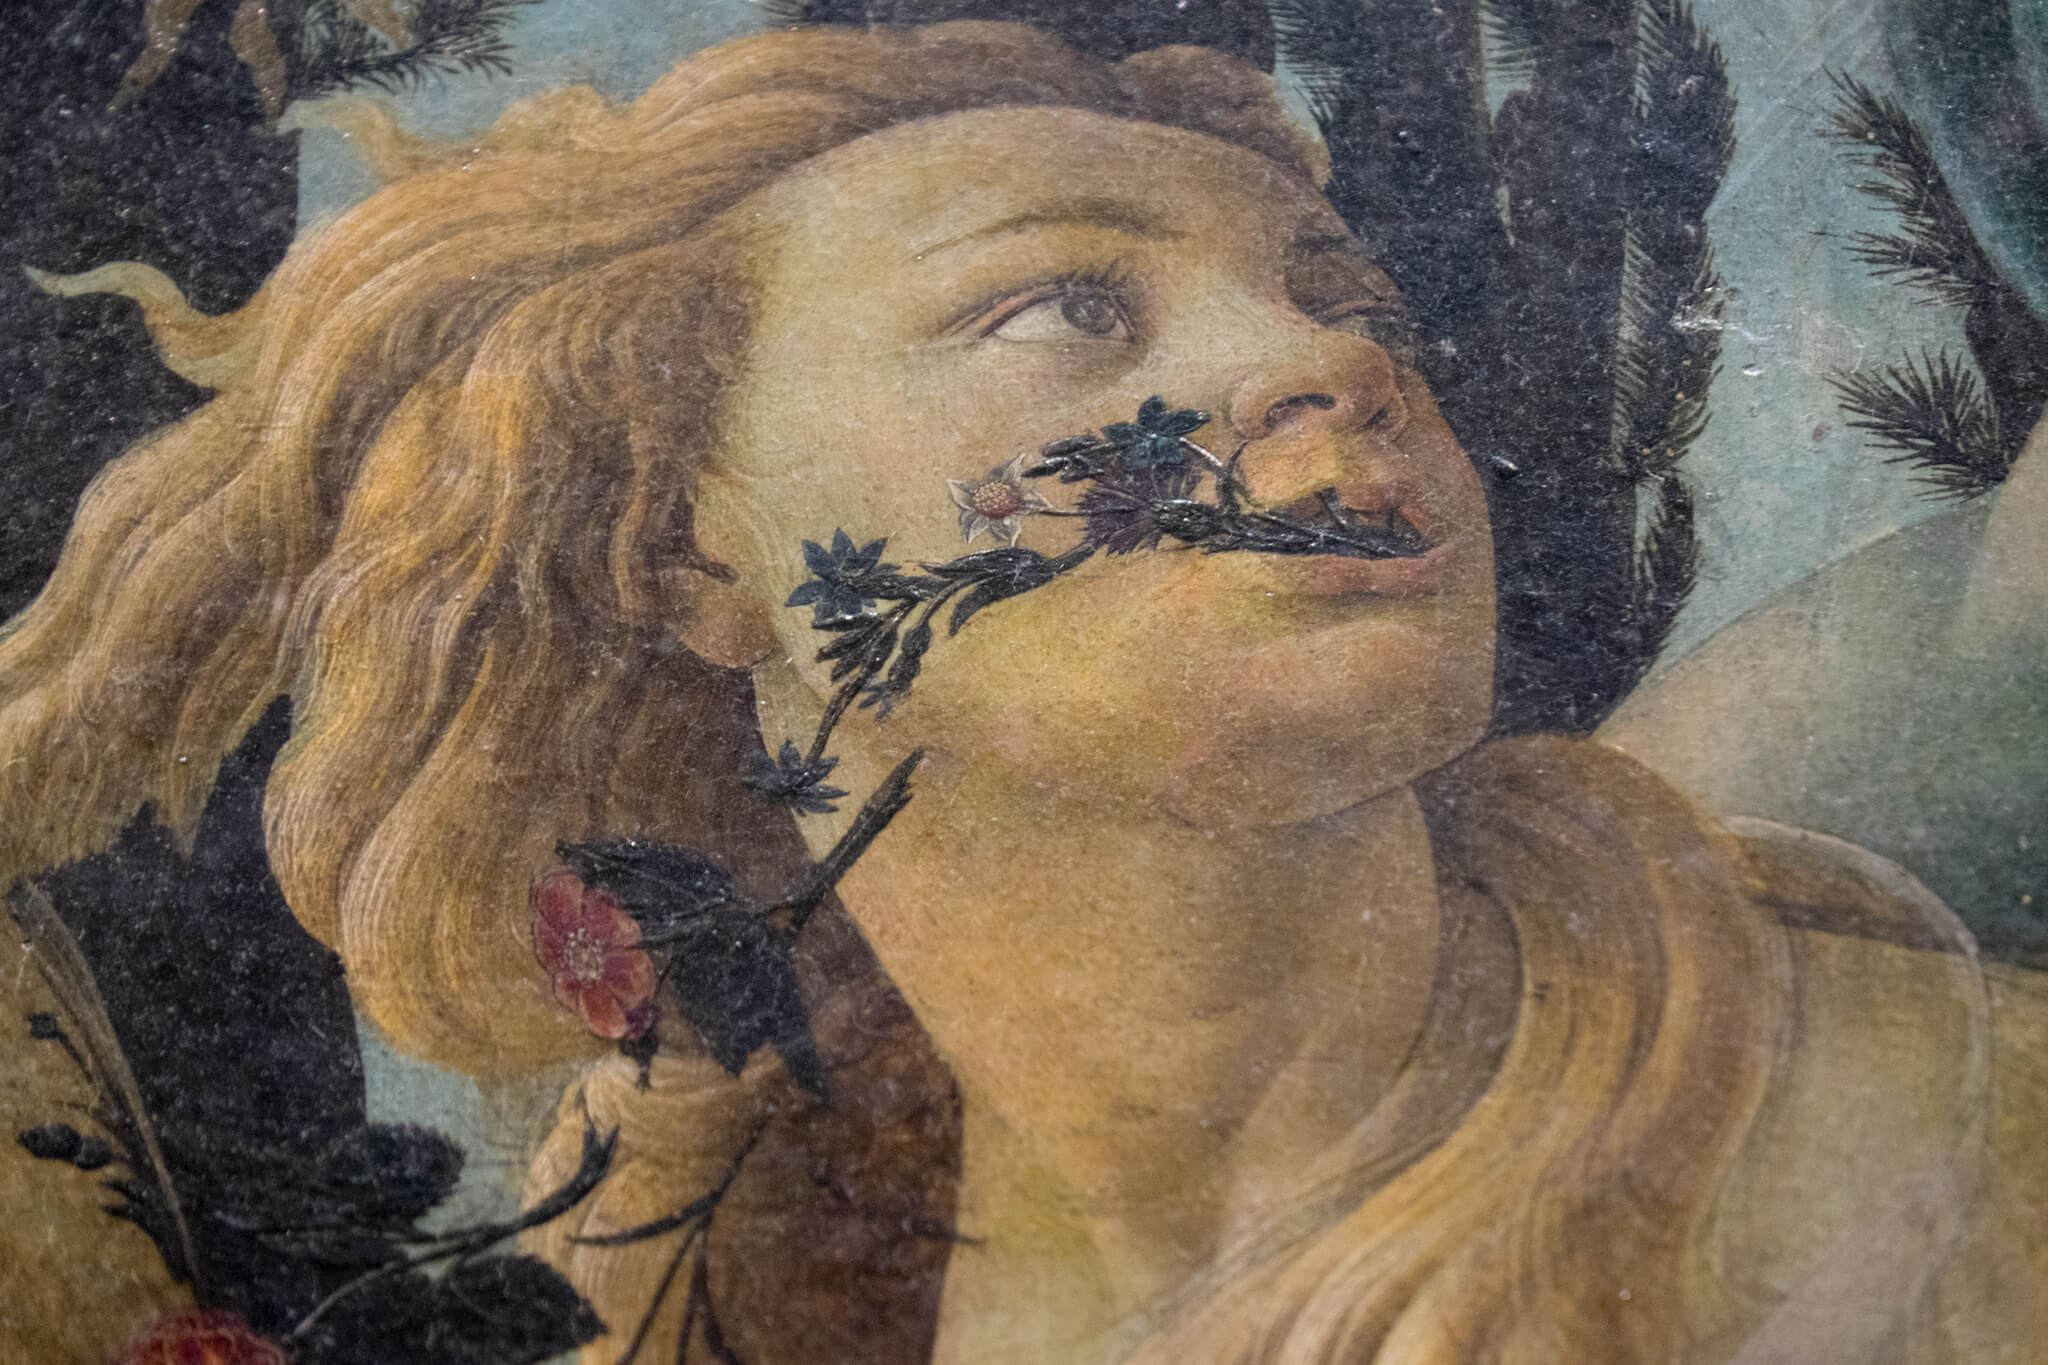 Botticelli's Primavera...And the importance of